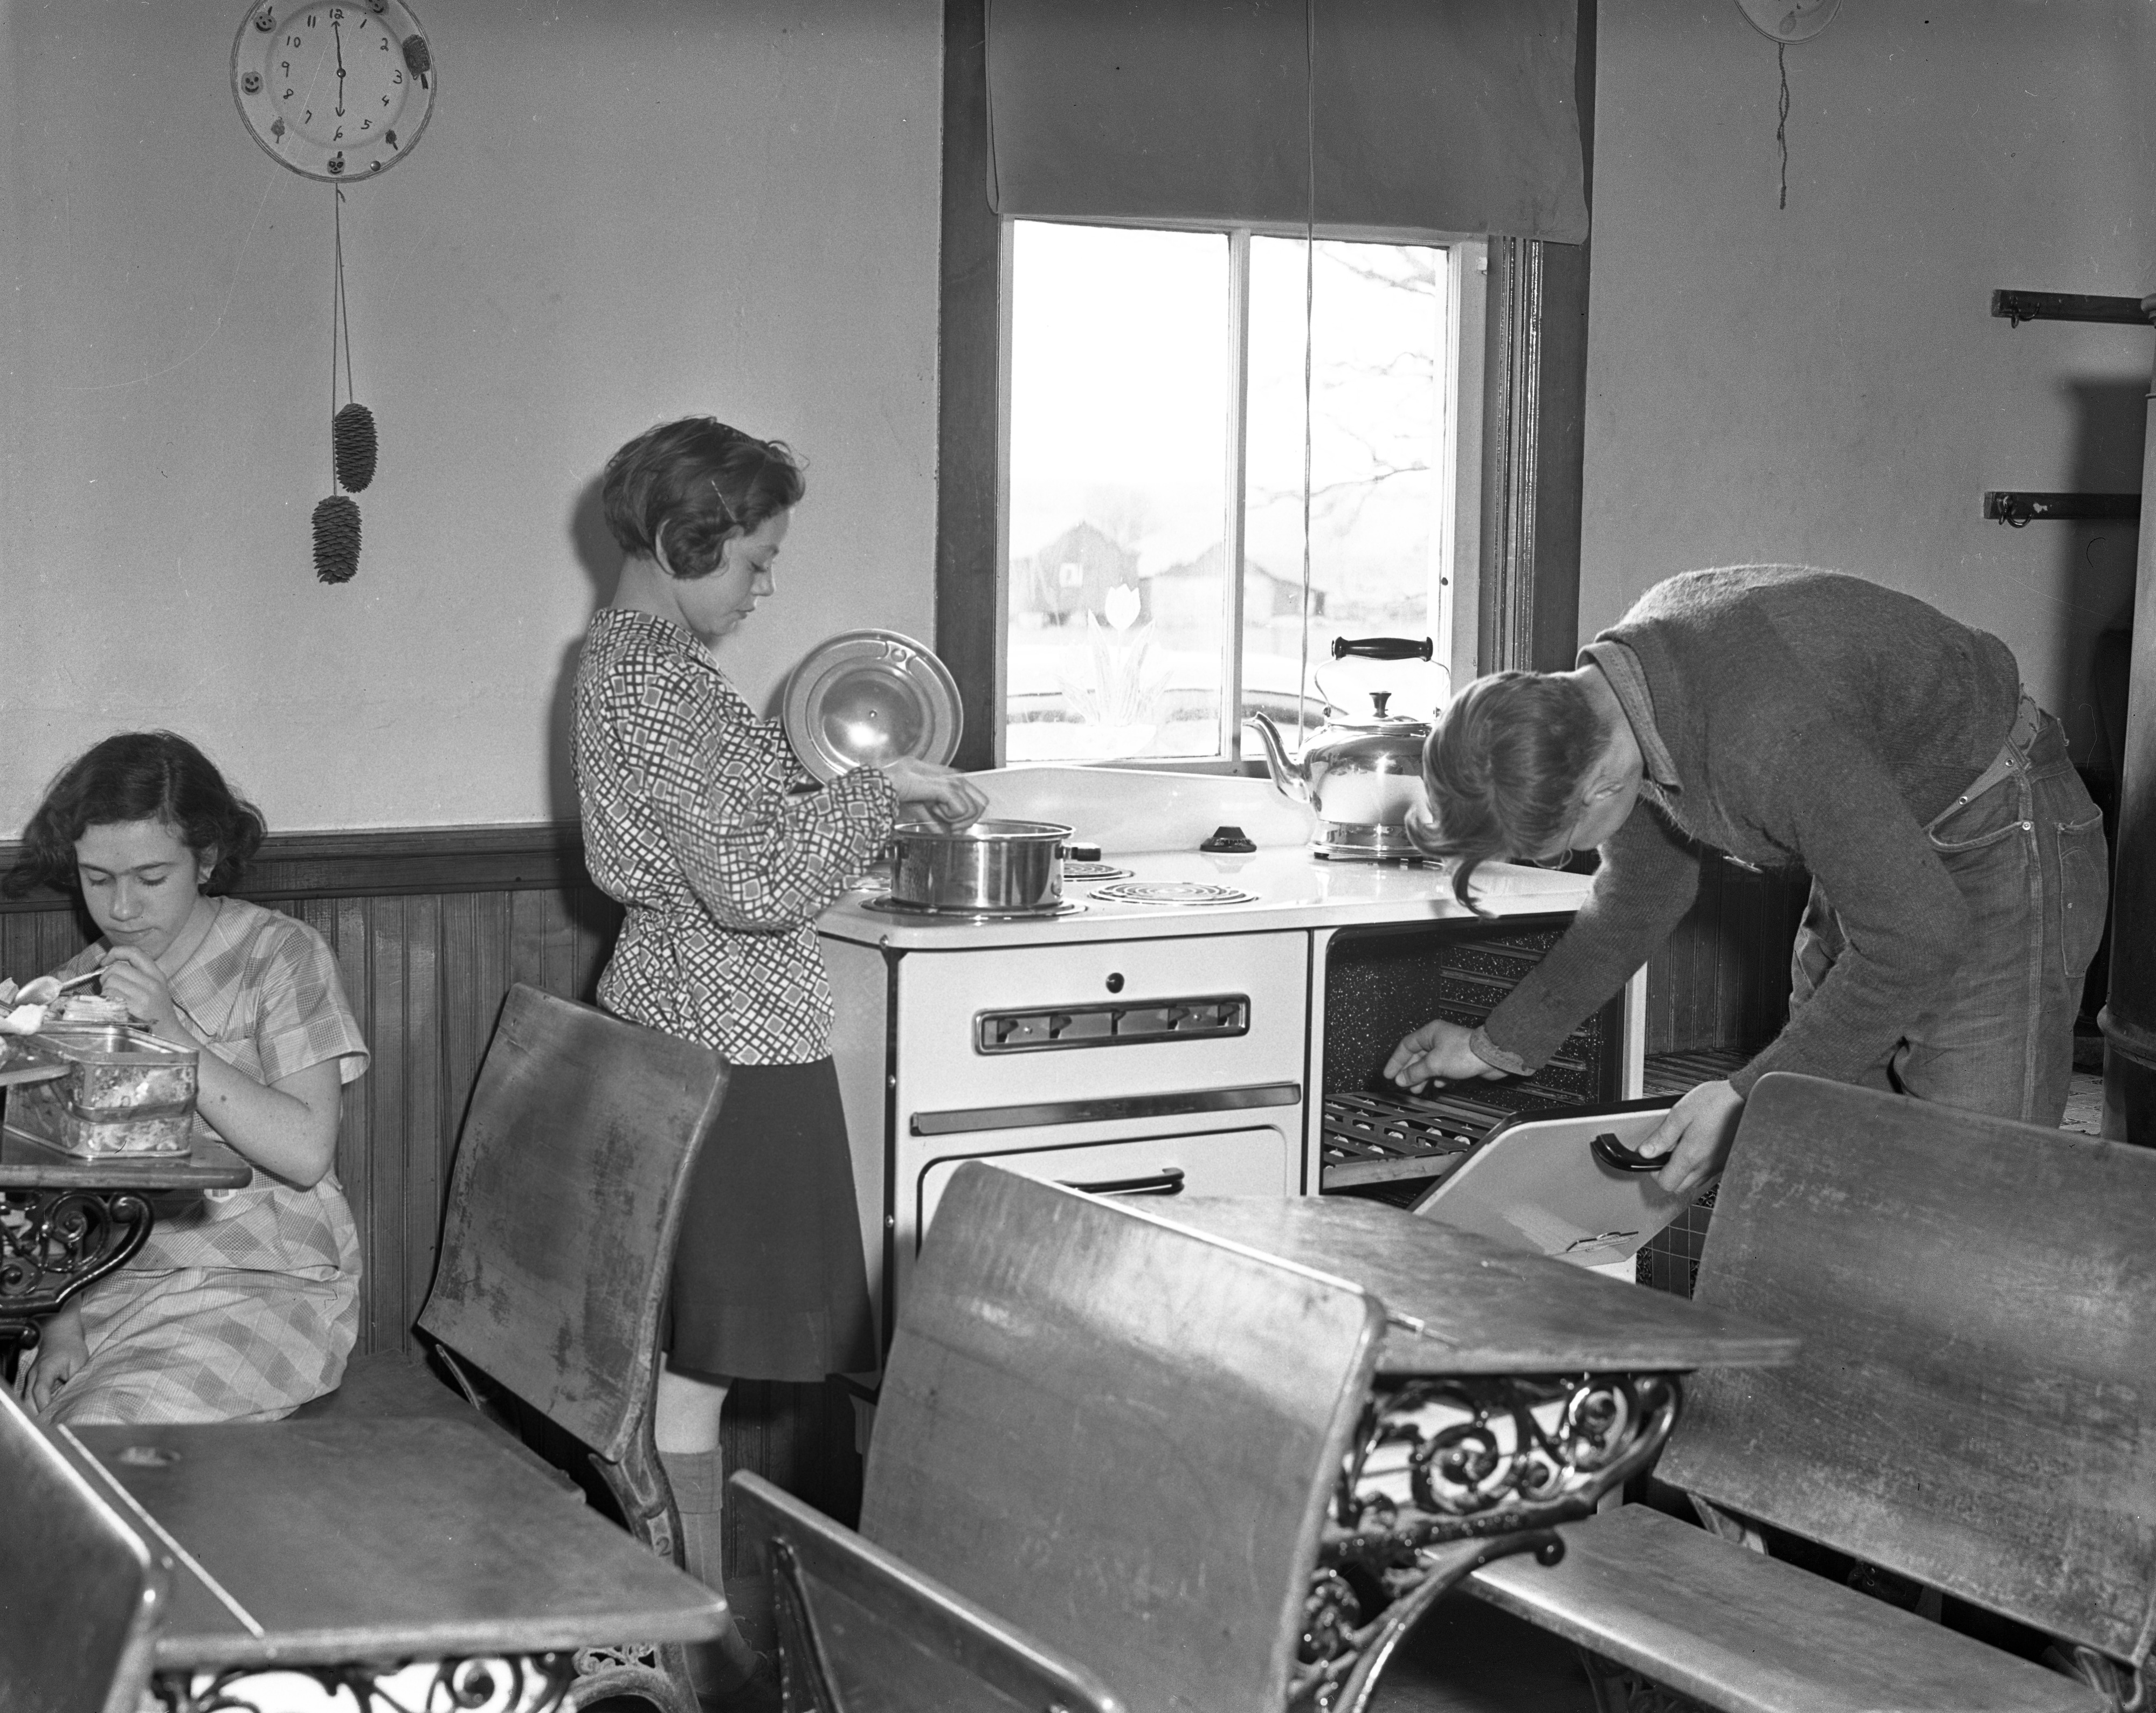 Cooking Lunch at Short School In Bridgewater Township, April 1937 image